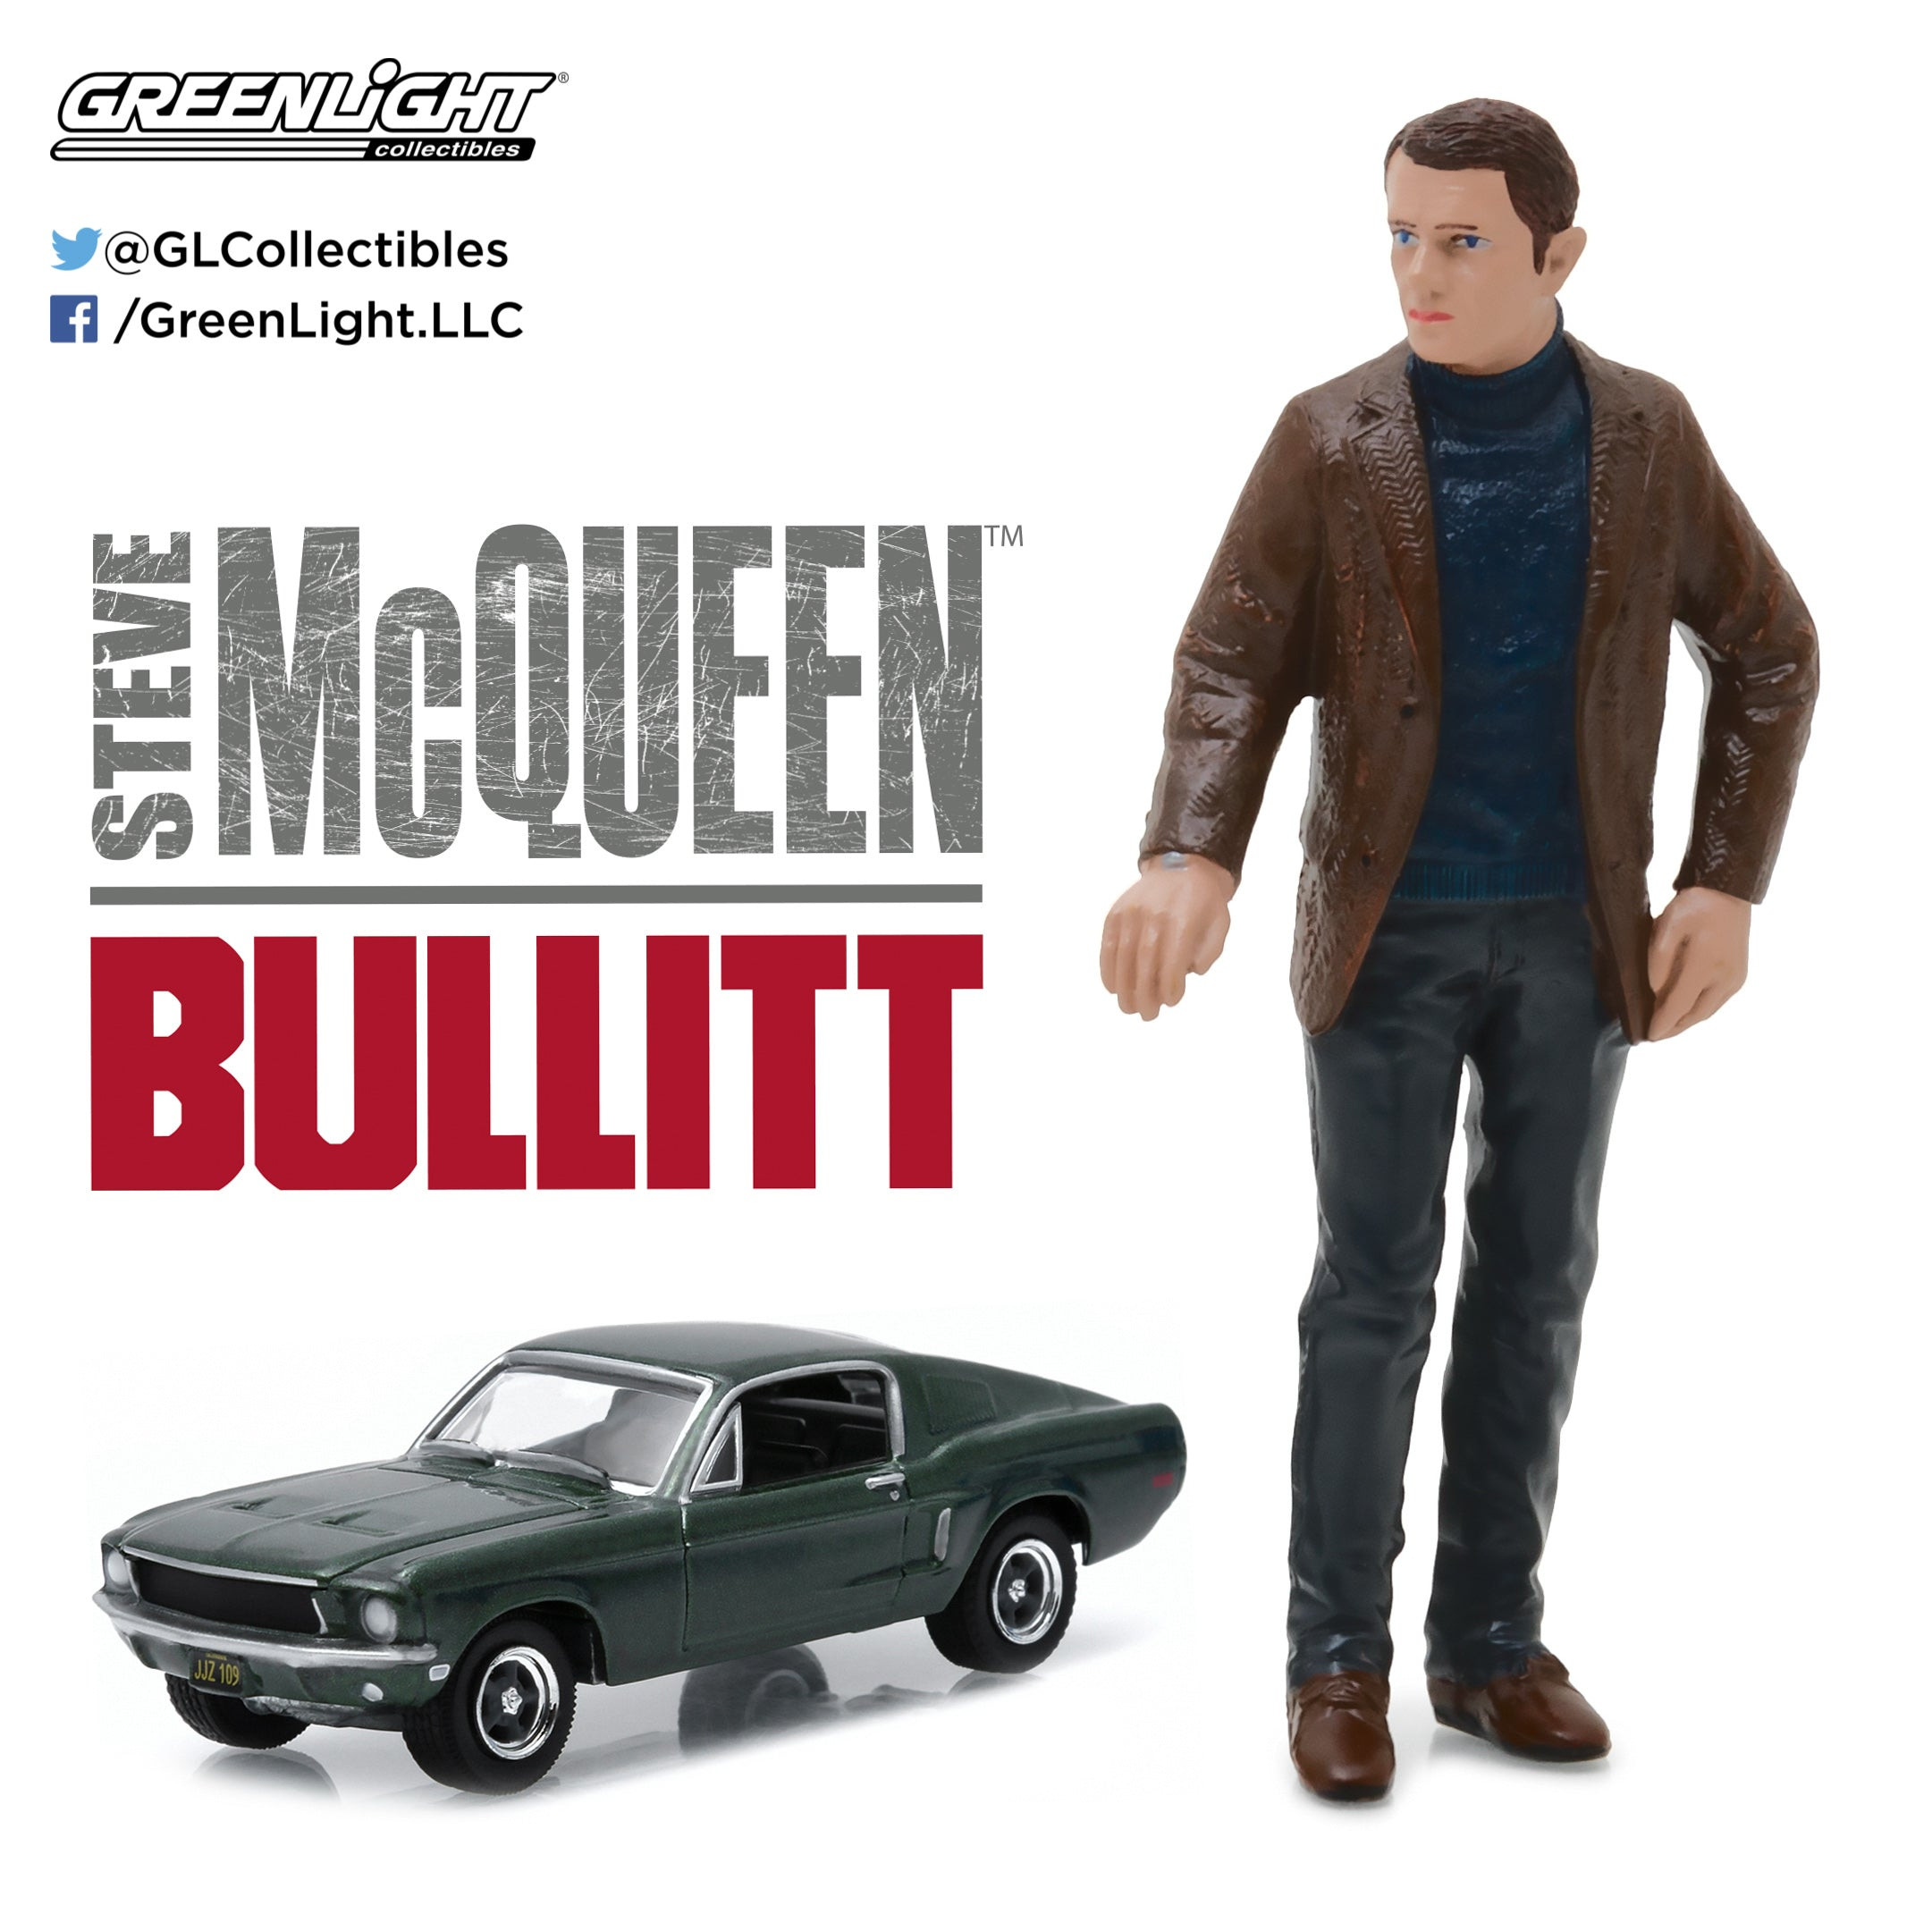 GreenLight 1/64 Hollywood - Bullitt (1968) - 1968 Ford Mustang GT Fastback with 1:18 Steve McQueen figure 29931